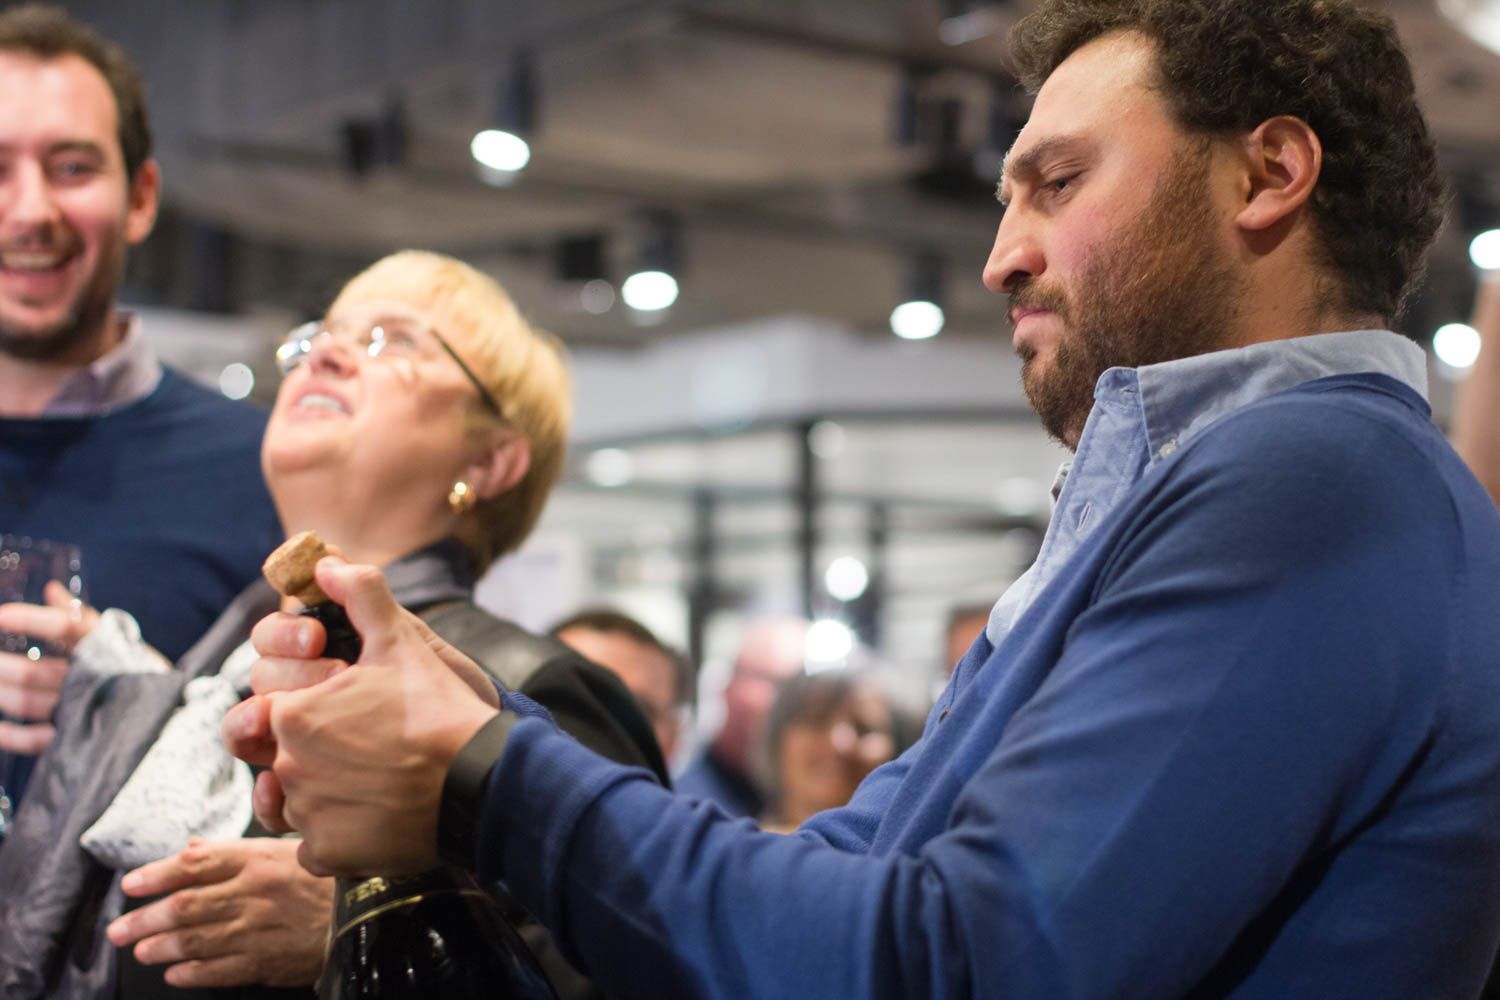 Eataly CEO Nicola Farinetti celebrates Tuesday's ribbon cutting ceremony by opening a bottle of champagne.